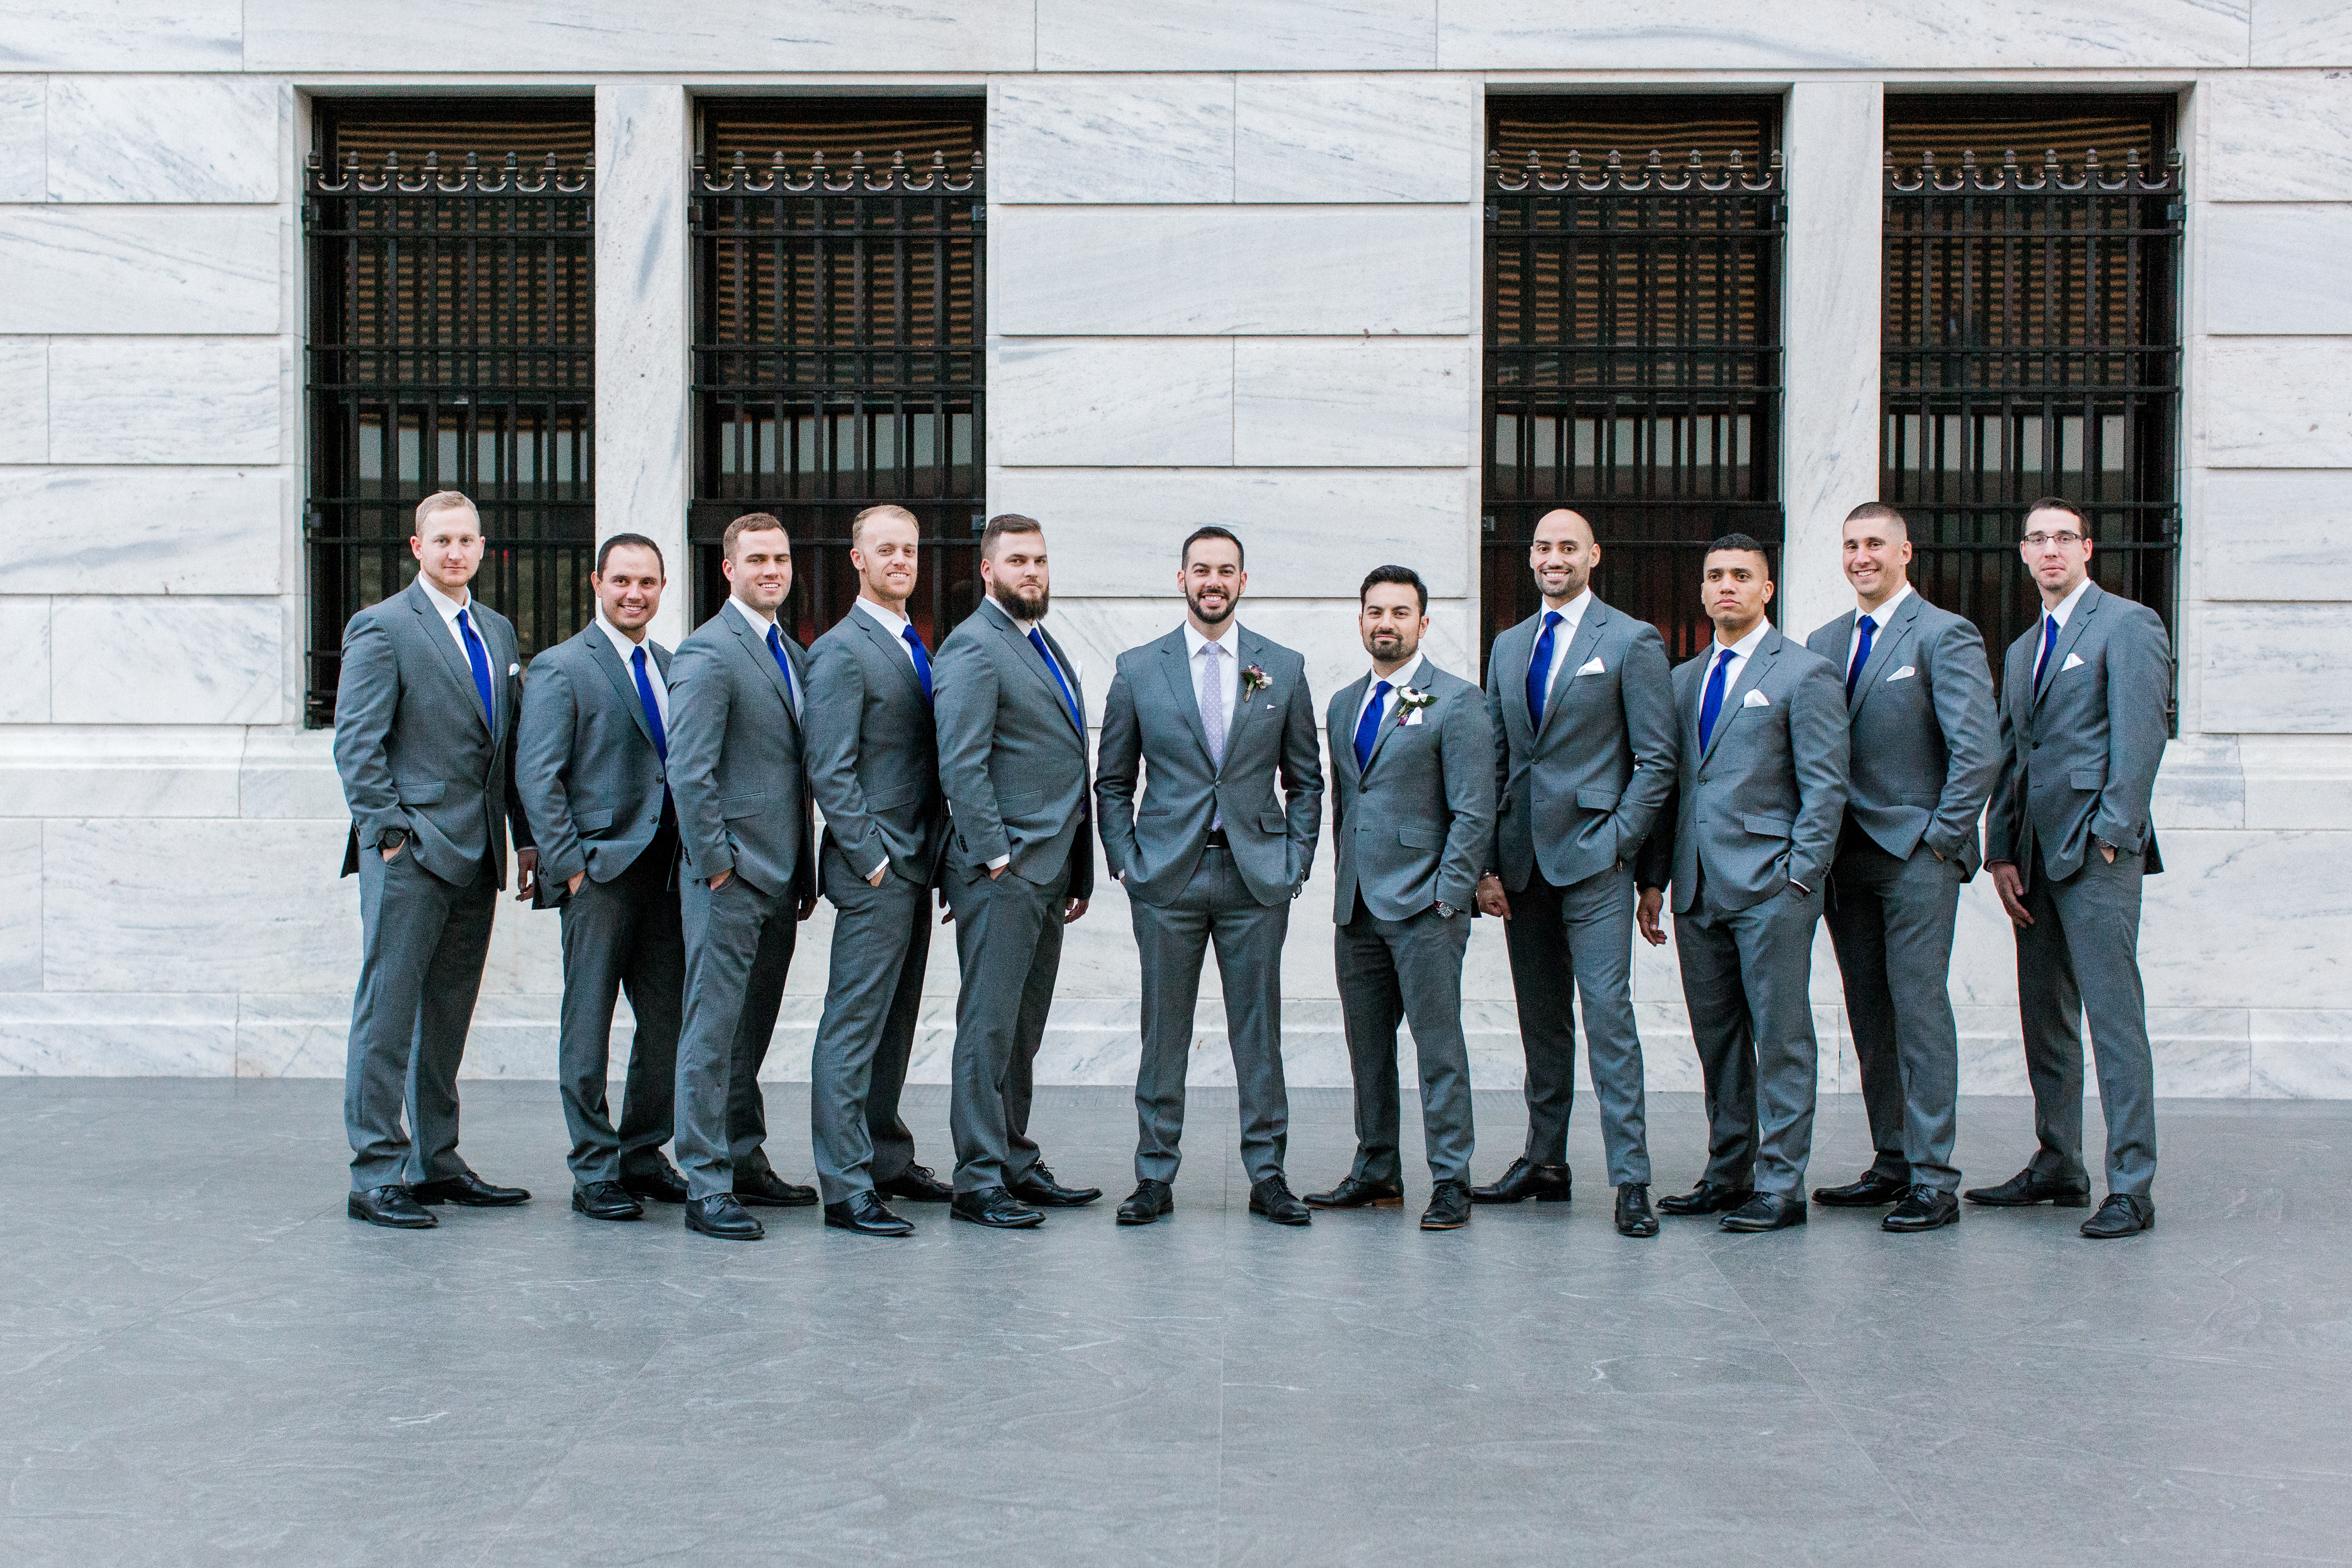 Troy and his dapper groomsmen posing in front of the stately Cleveland Art Museum. Photo by: Marissa Camino Photography